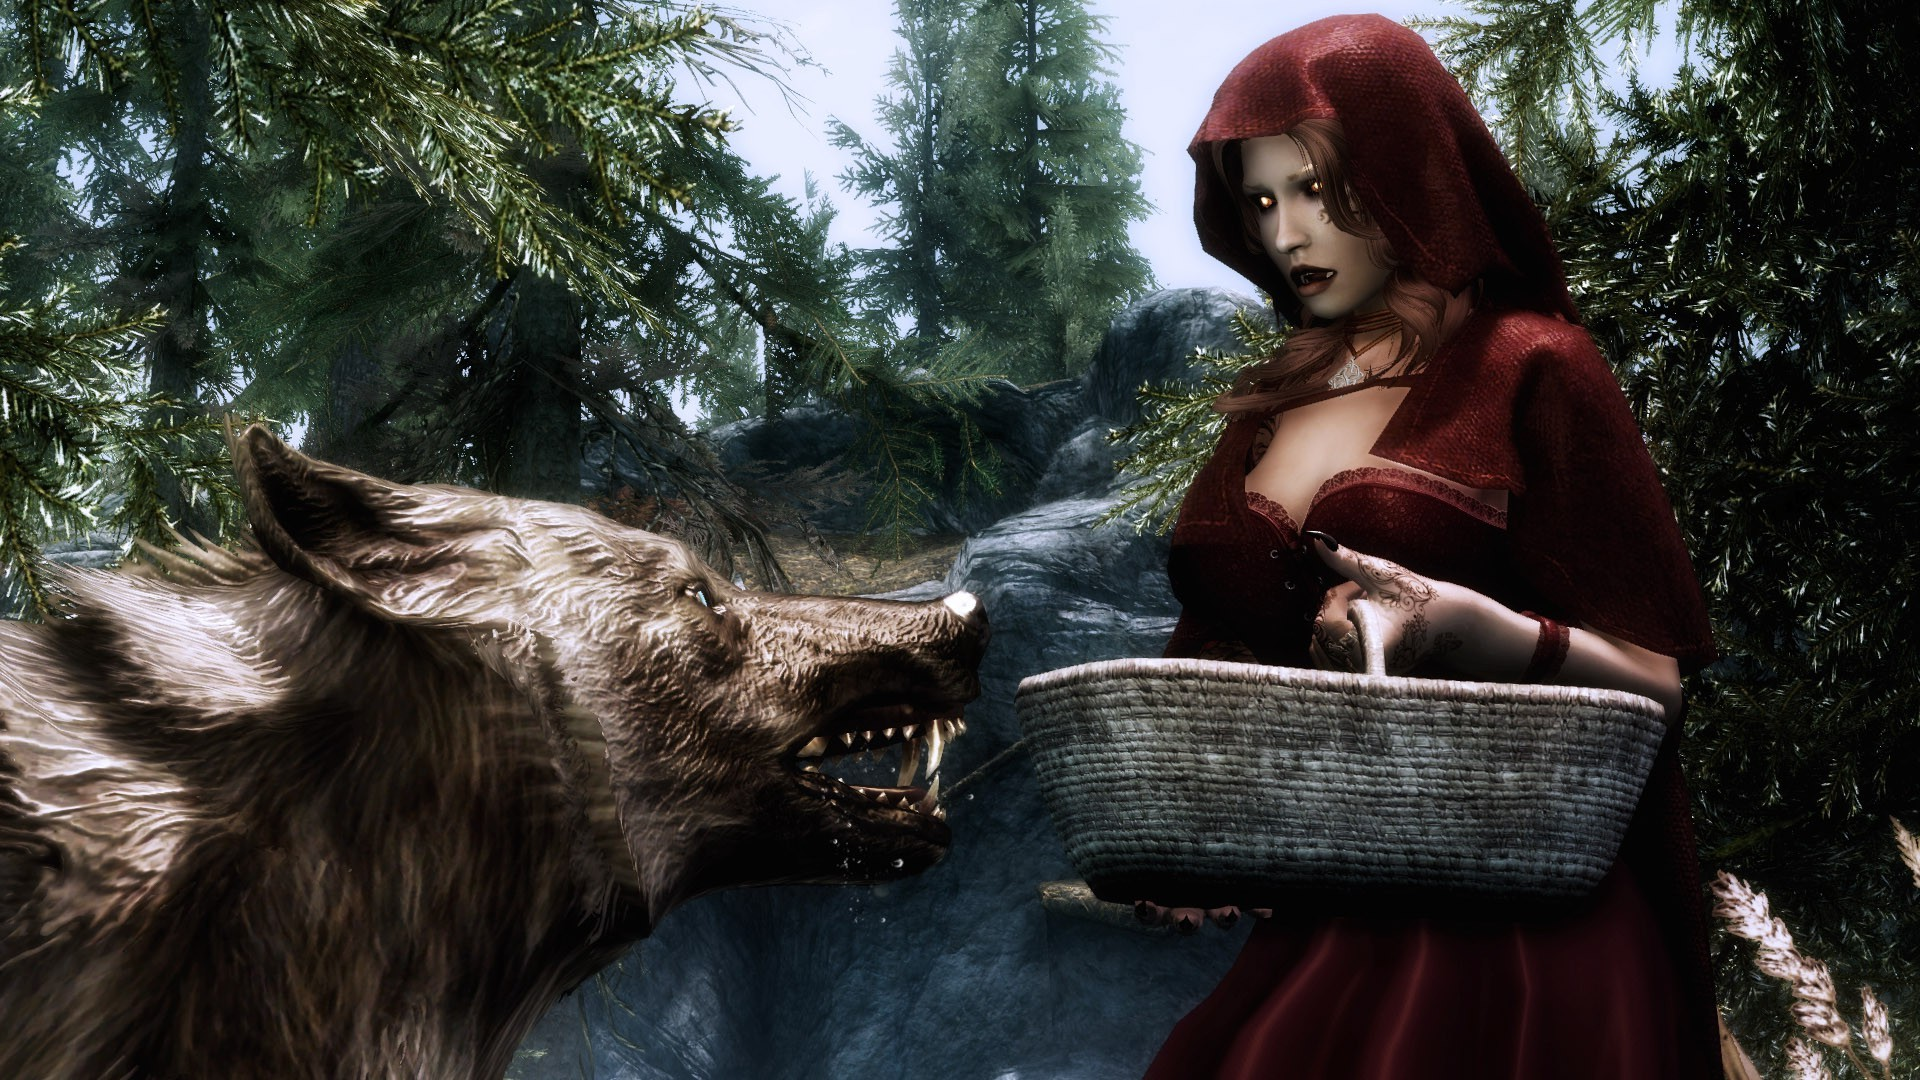 Anime Archer Girl Wallpapers The Elder Scrolls V Skyrim Red Hood Wolf Wallpapers Hd